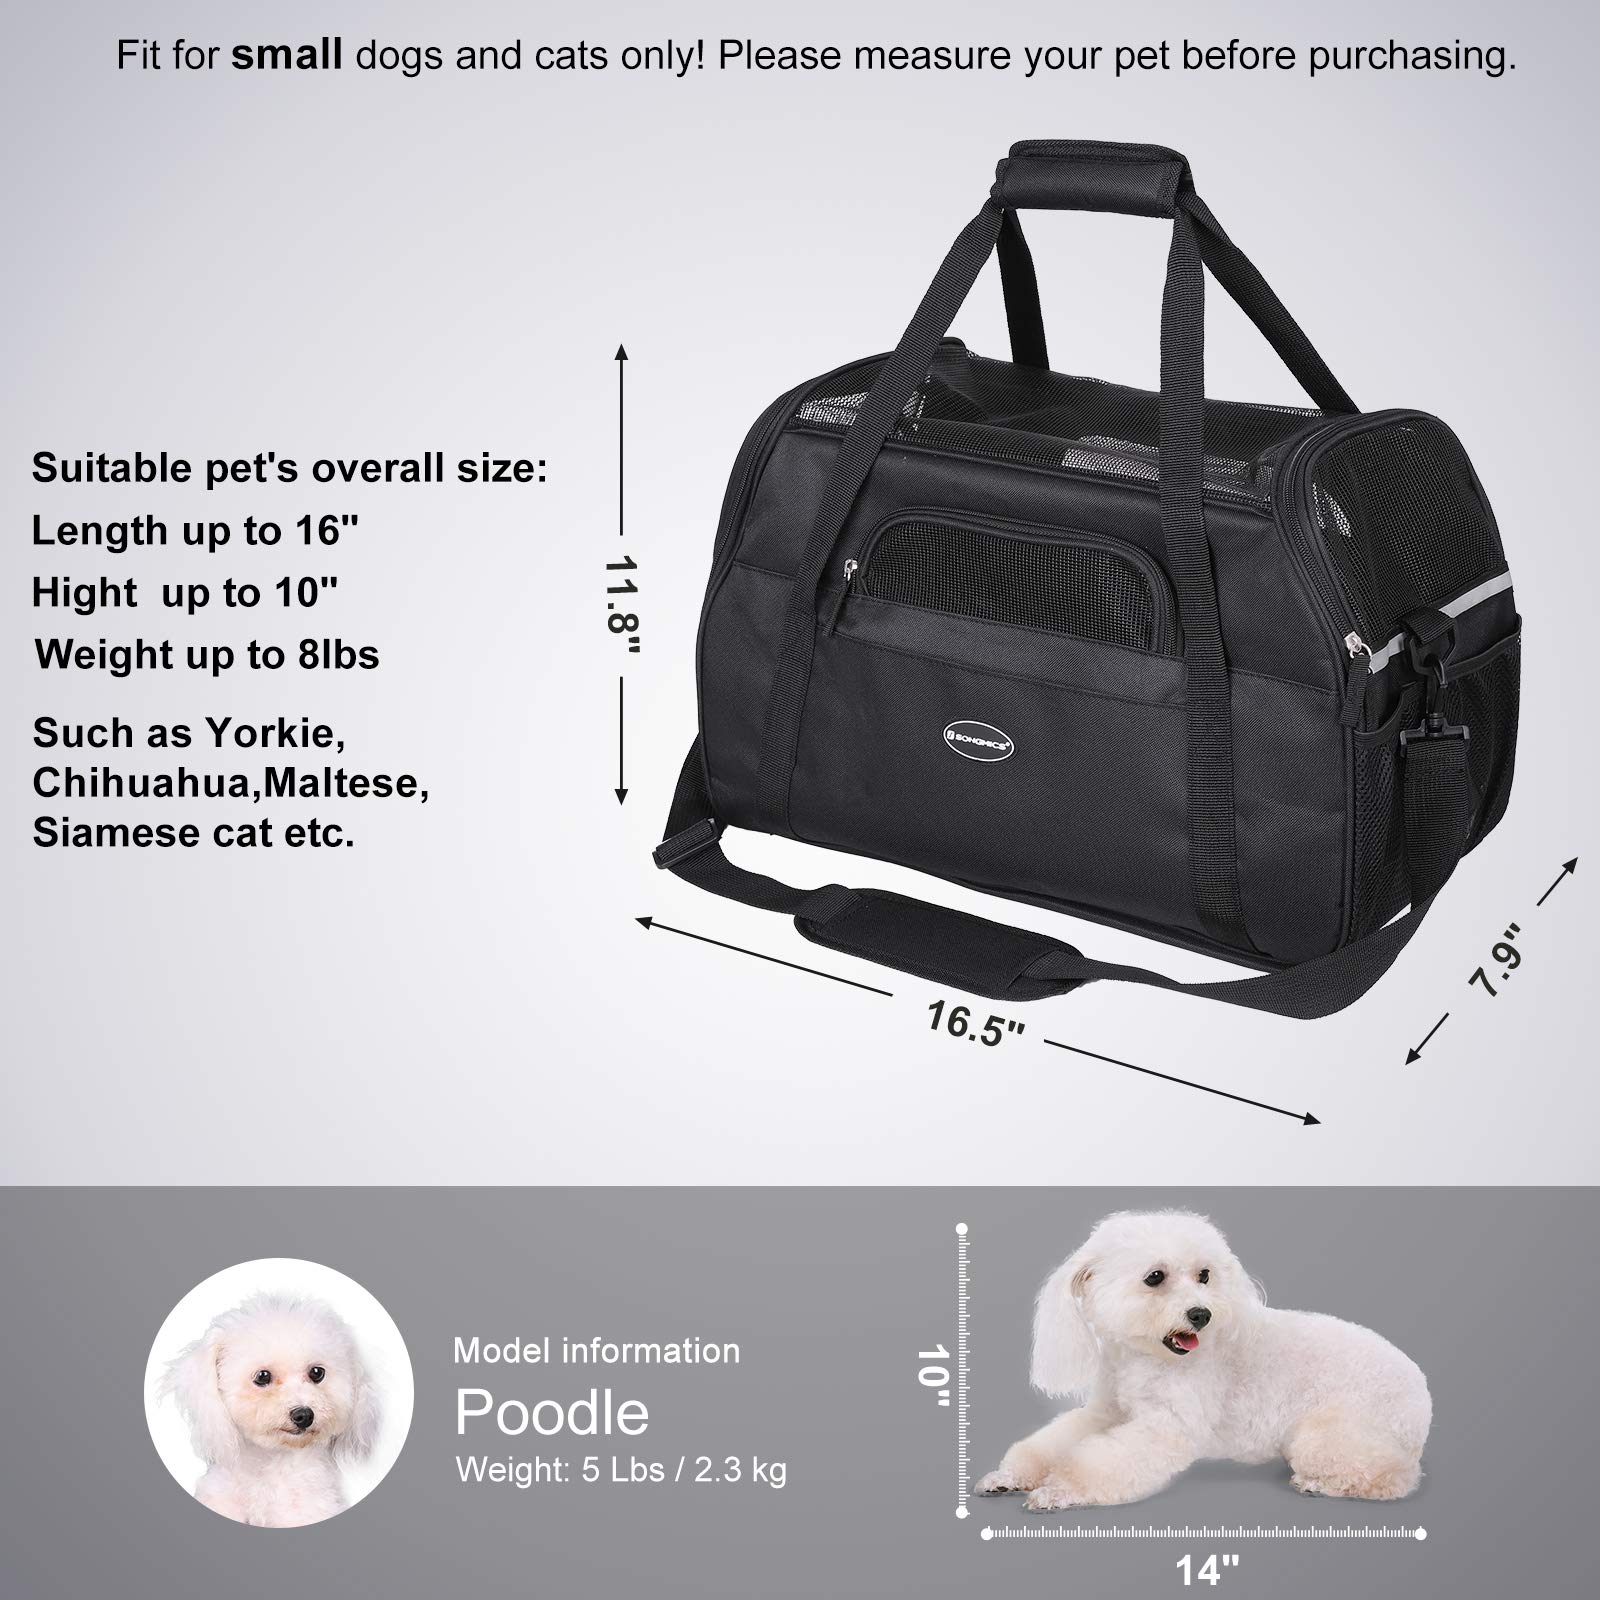 SONGMICS Foldable Pet Carrier, Soft-Sided, for Travel, Airline Approved, Small Dog/Cat Bags with Shoulder Strap, Garbage Bag Included UPDC42BK by SONGMICS (Image #3)